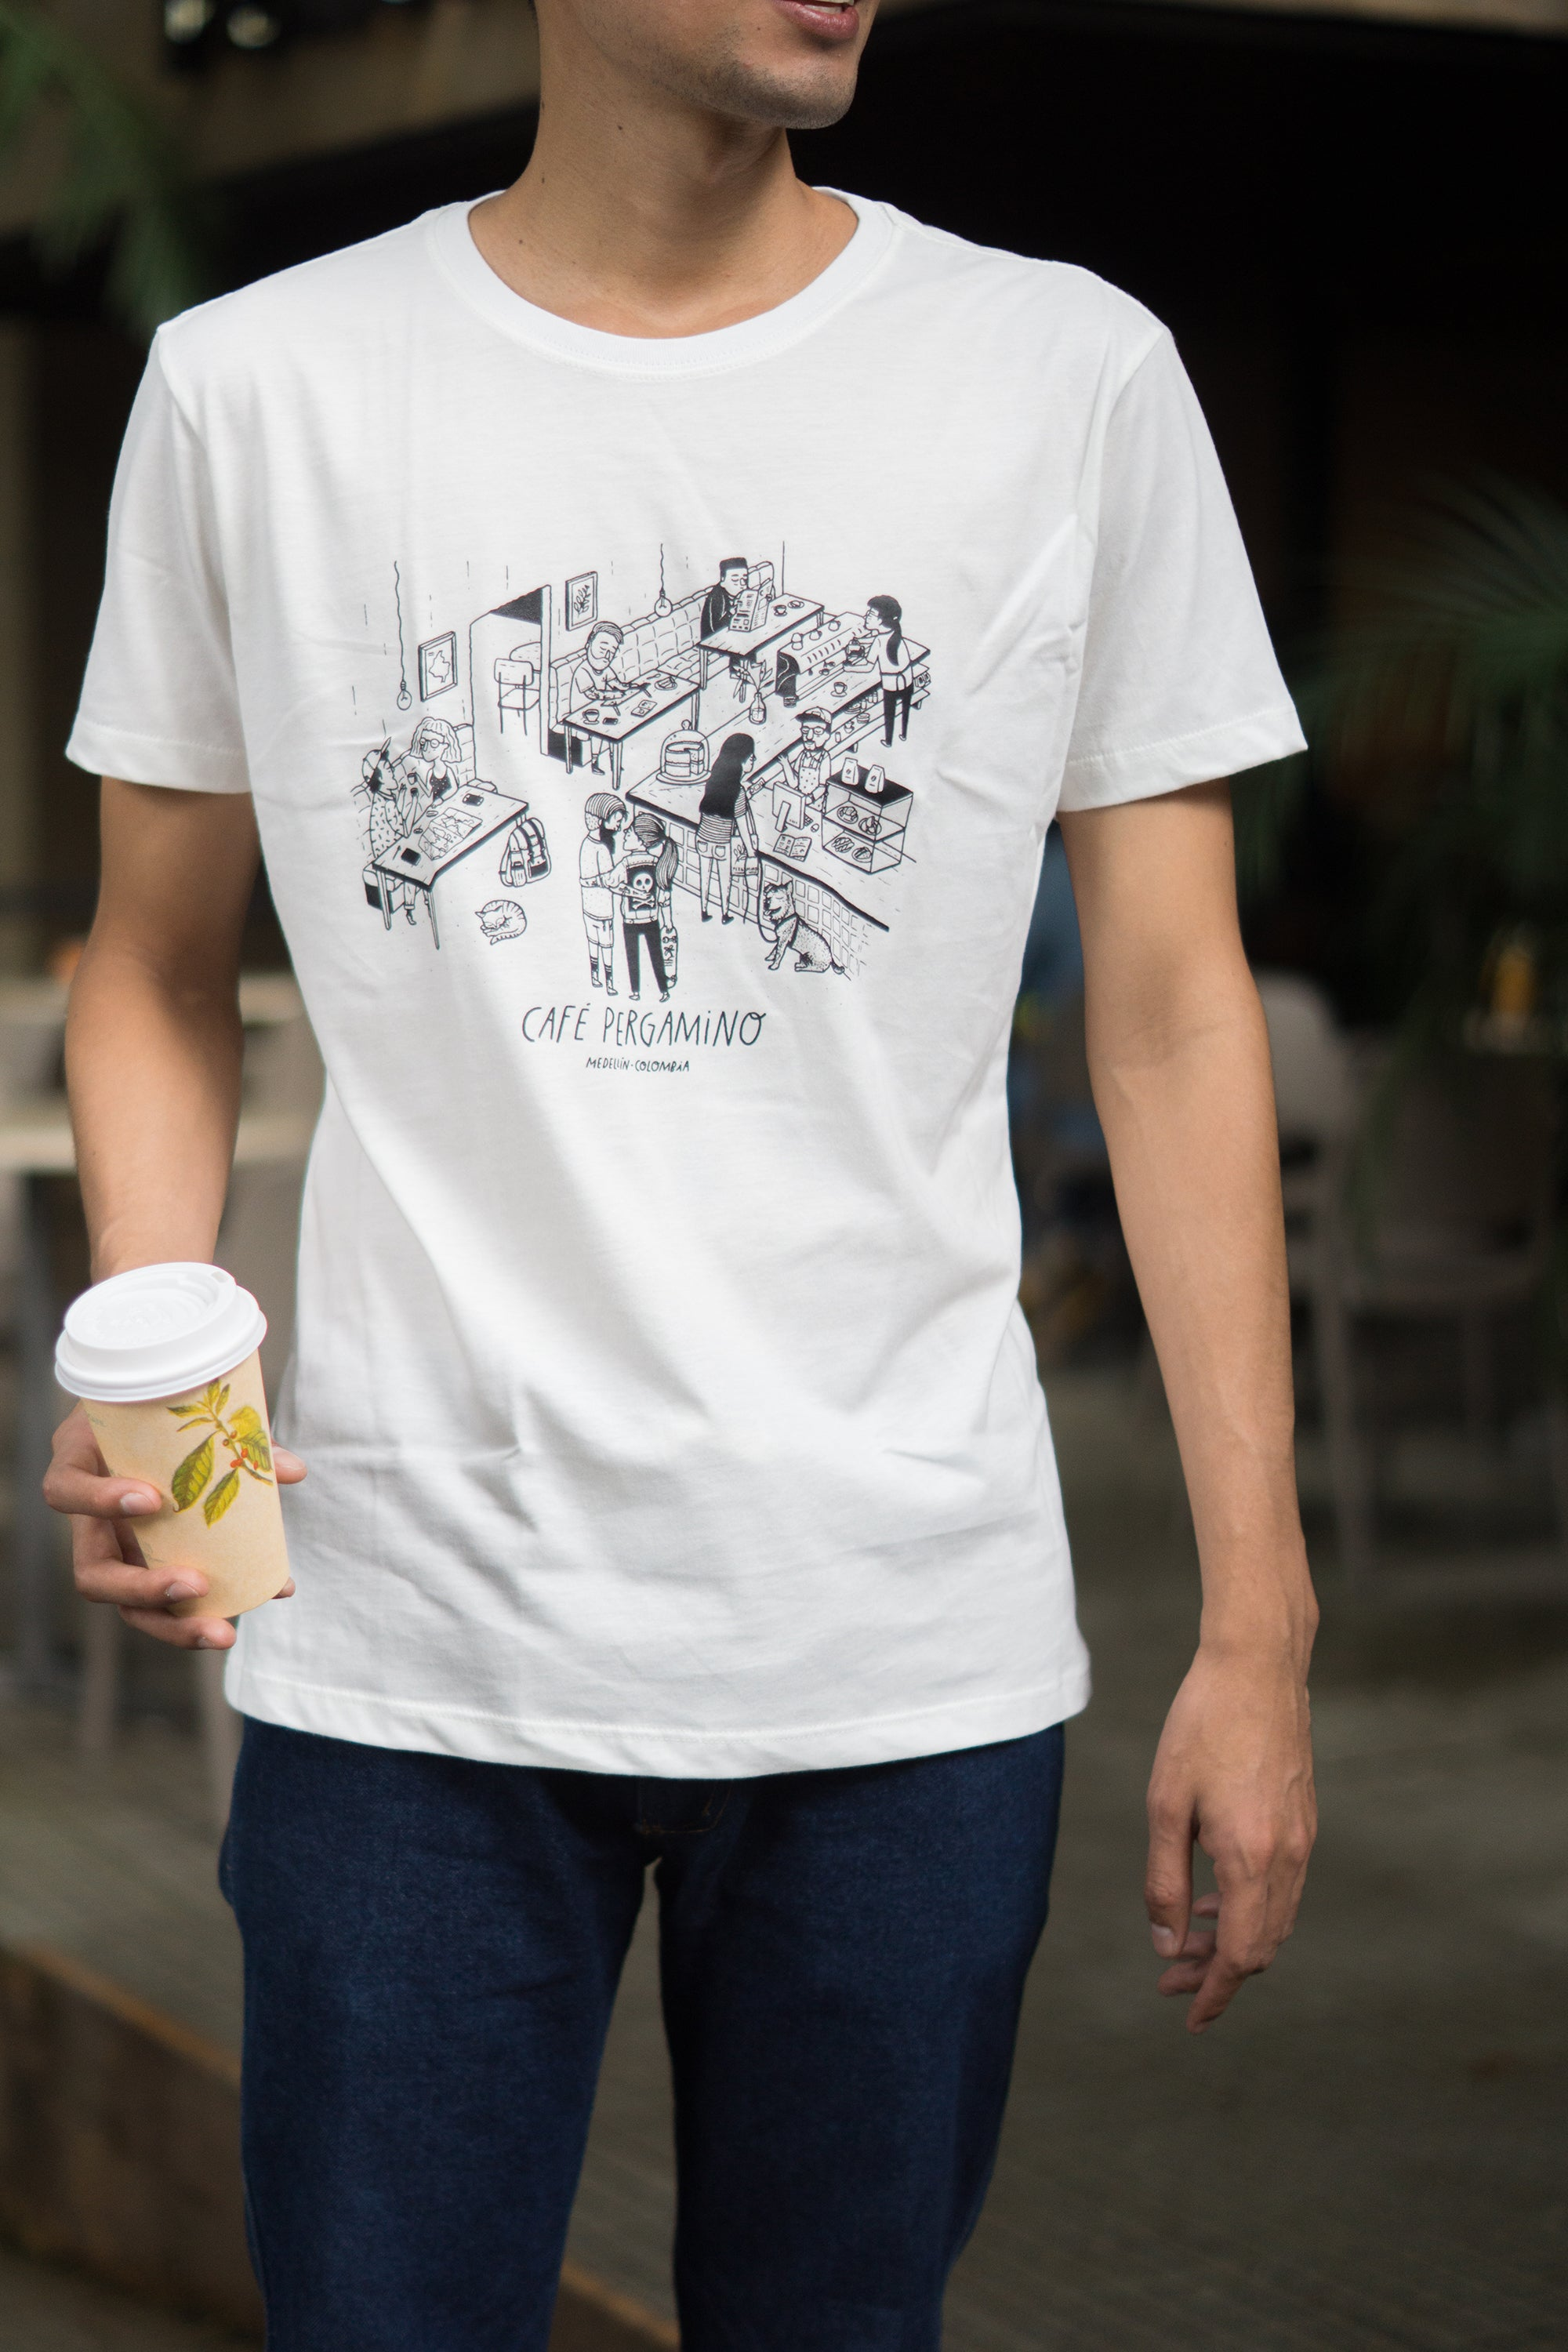 PERGAMINO Coffee Shop T-shirt